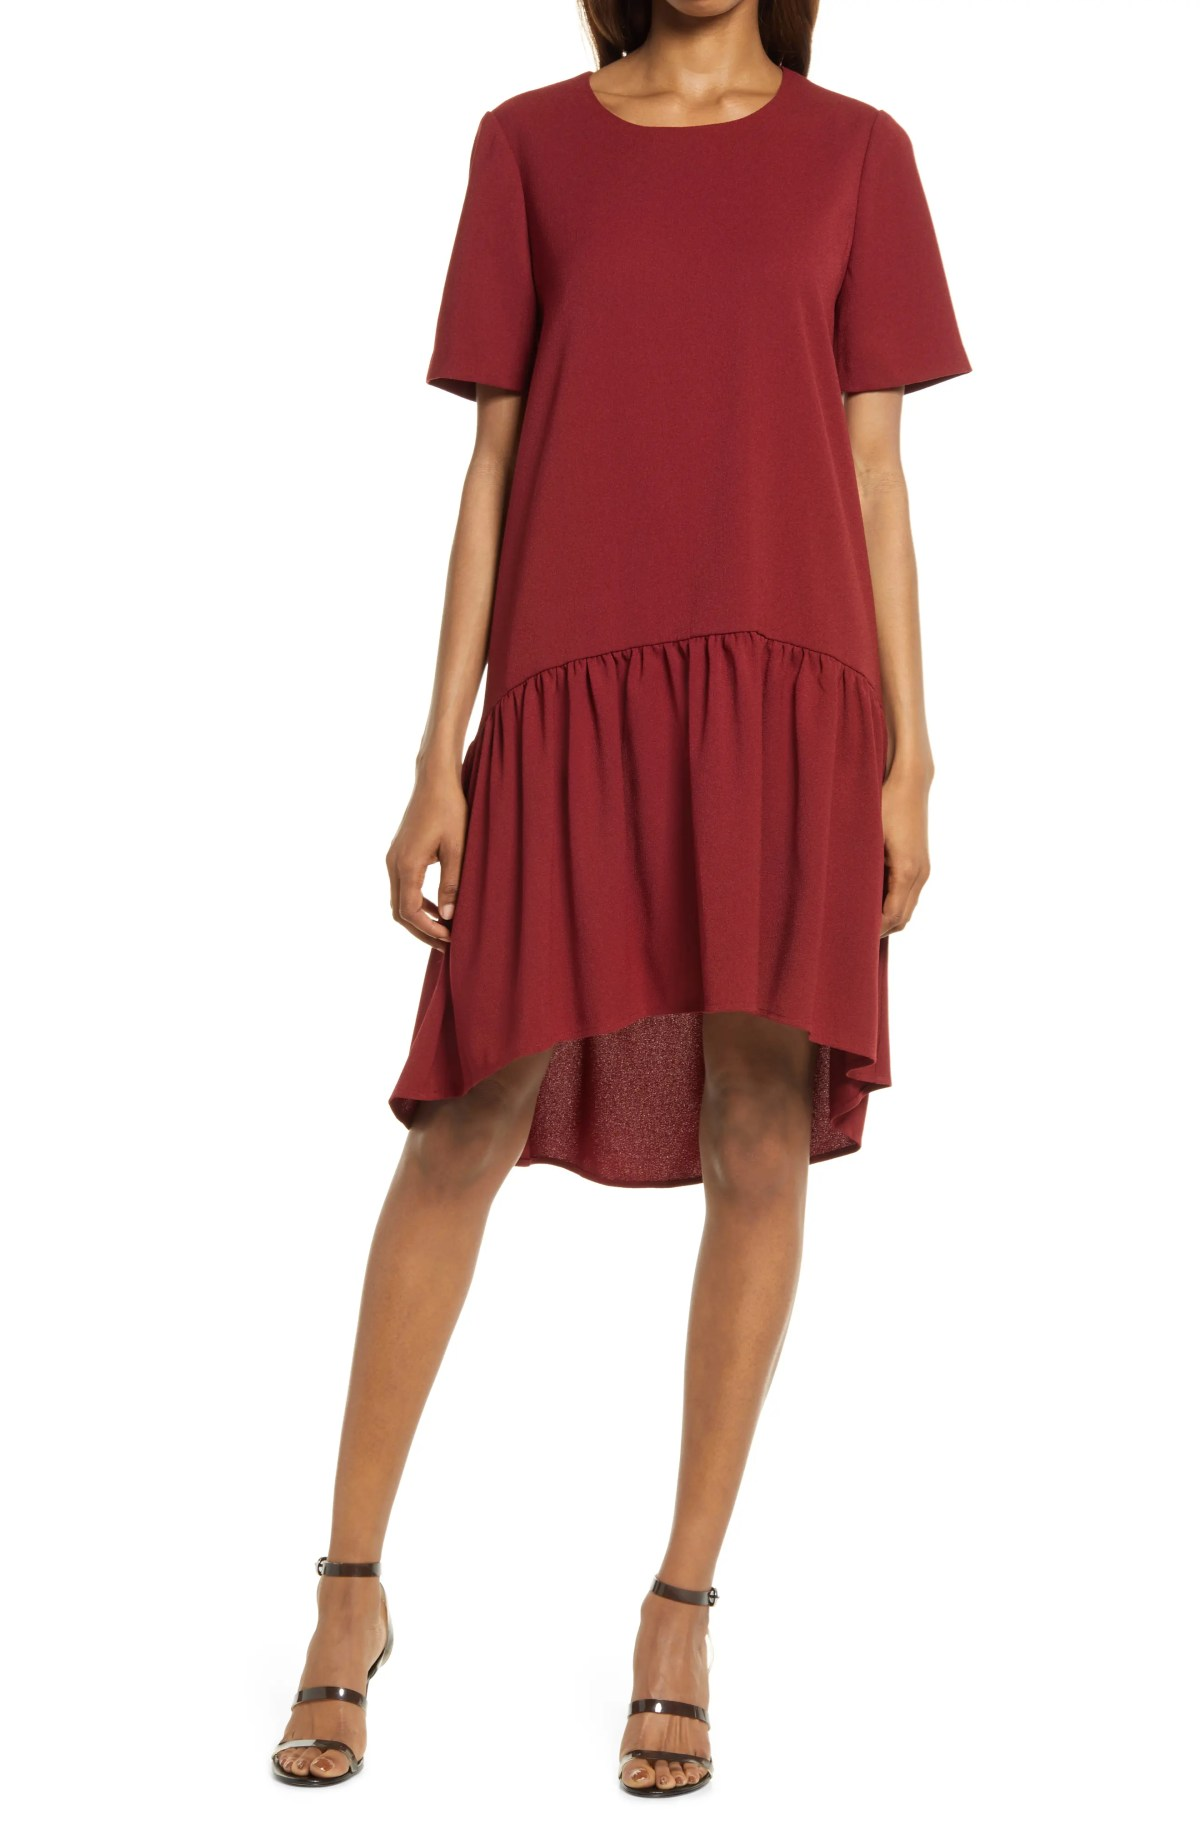 CHARLES HENRY High/Low Knit Dress, Main, color, BURGUNDY